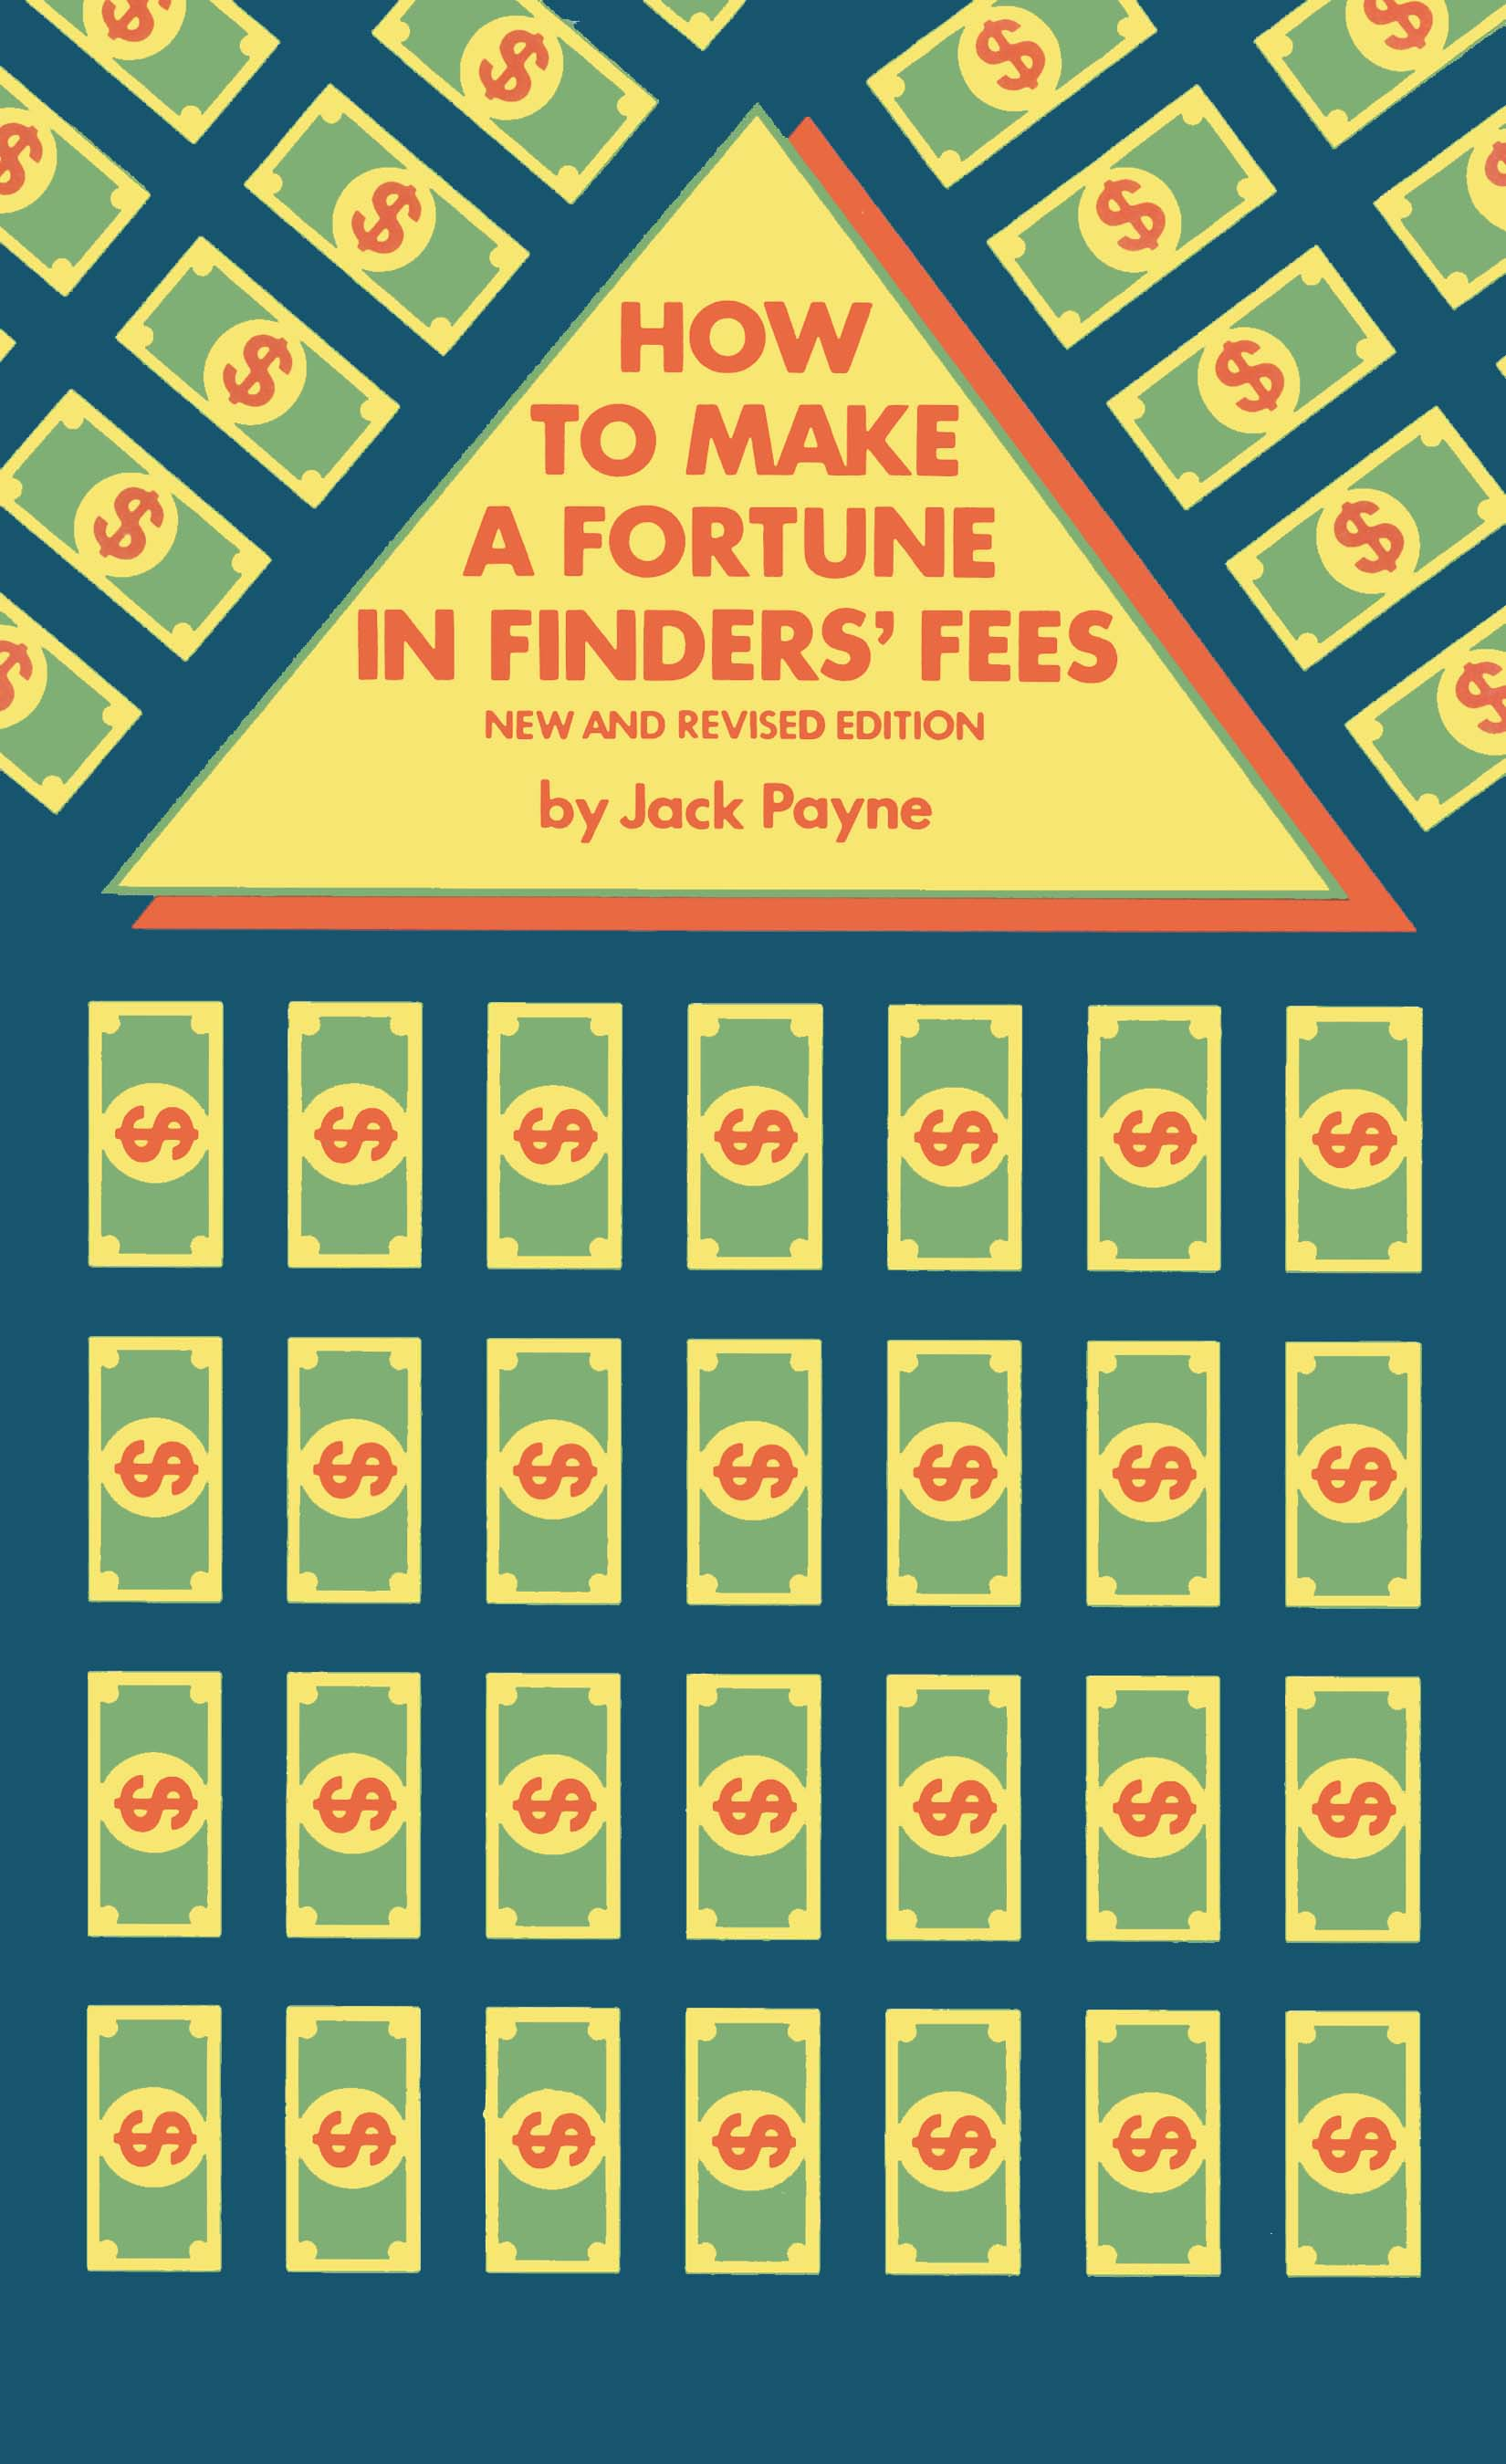 How to Make a Fortune in Finder's Fees: New and Revised Edition